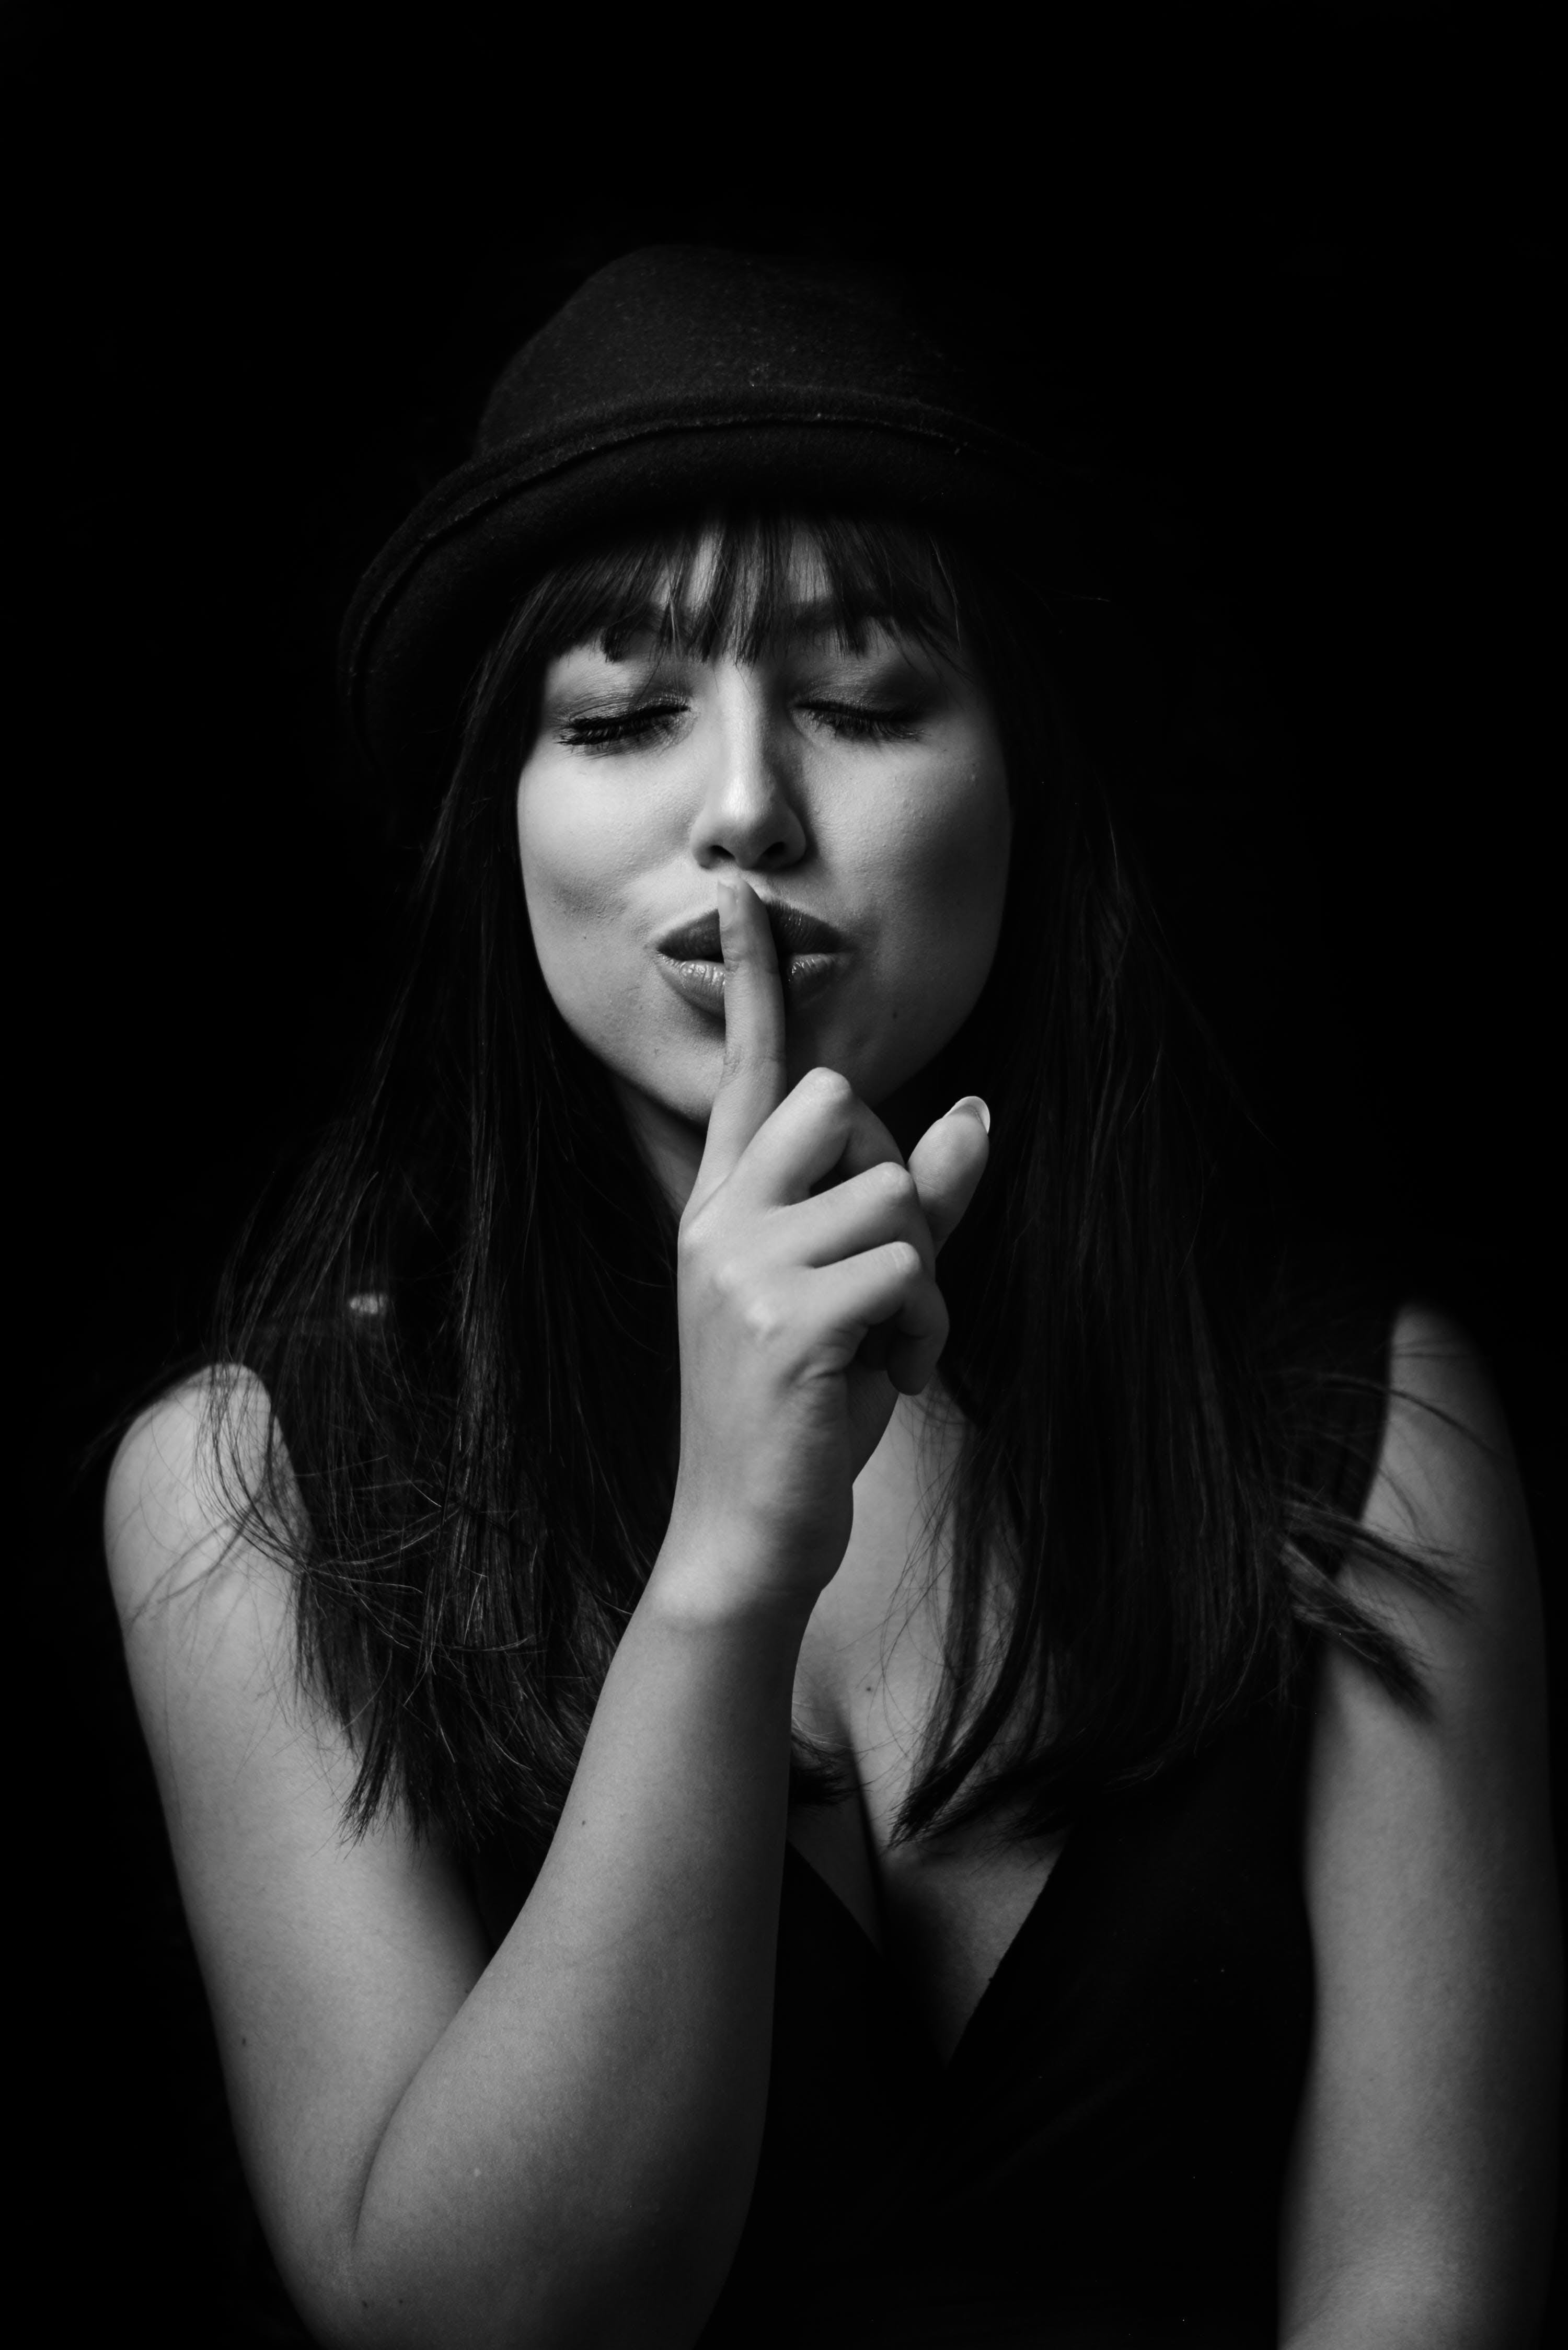 Monochrome Photography of Woman Doing Silent Gesture